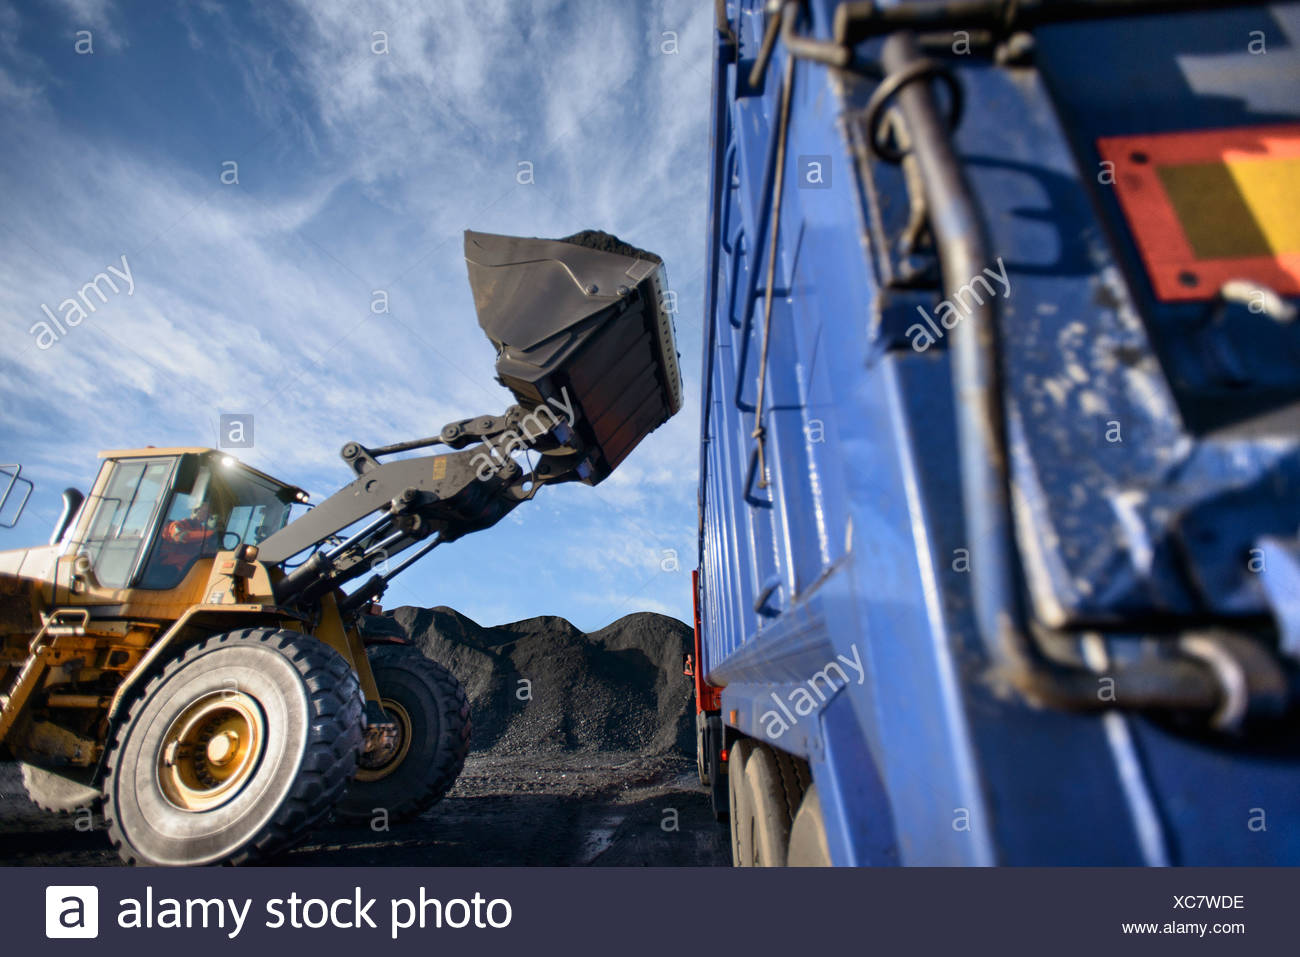 coal mining excavator stockfotos coal mining excavator bilder alamy. Black Bedroom Furniture Sets. Home Design Ideas